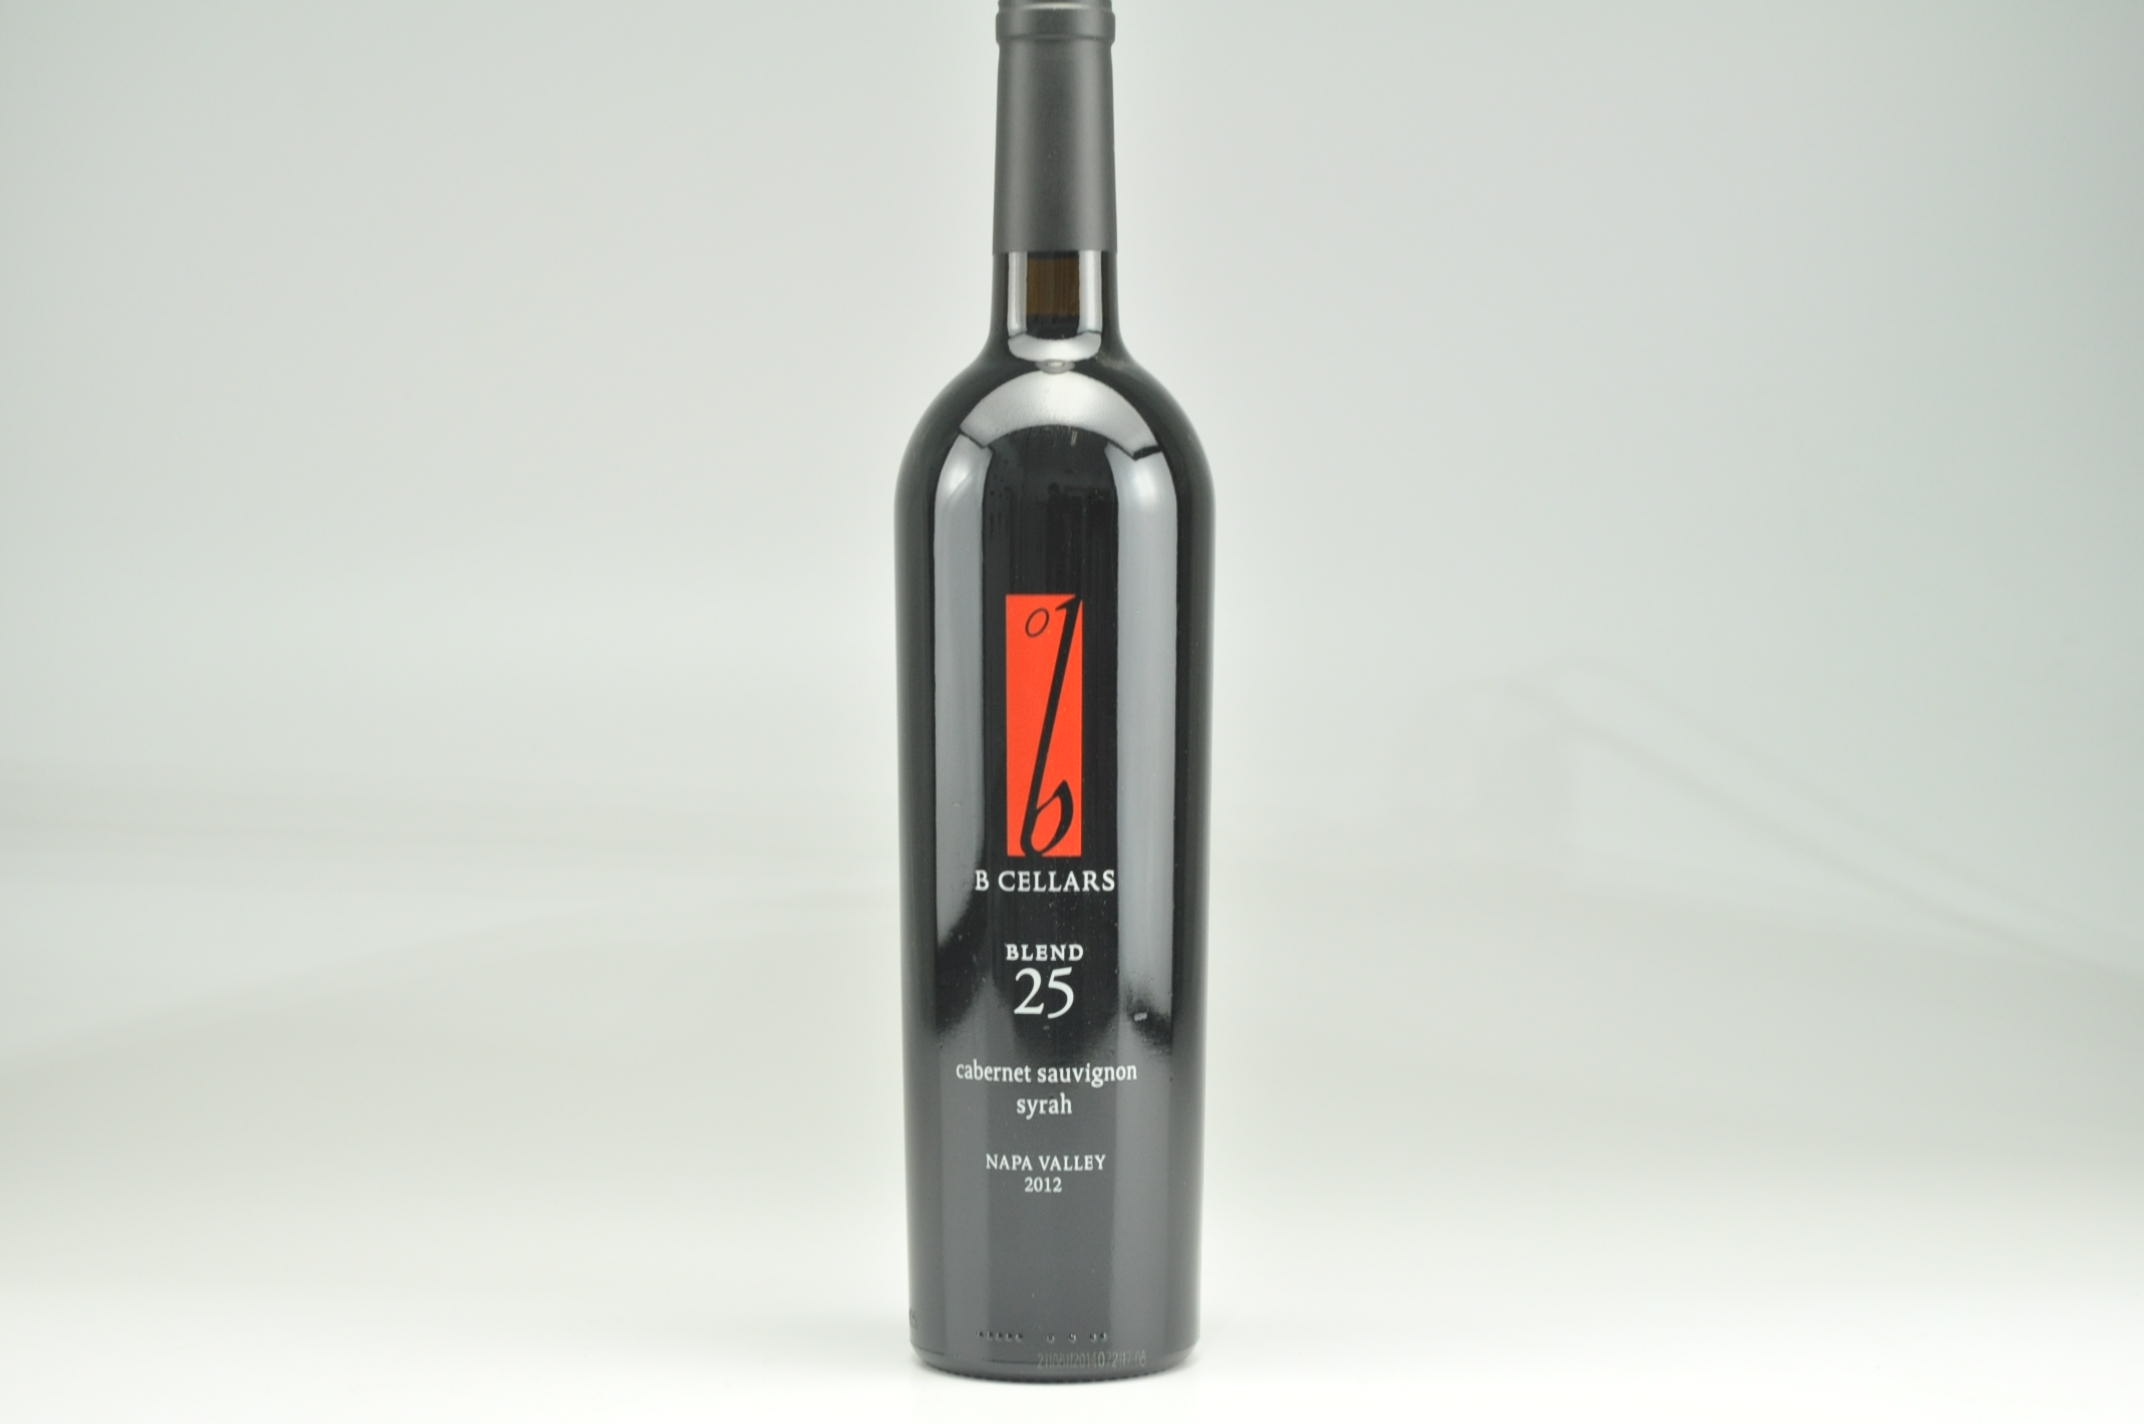 2012 B Cellars Blend 25, Napa Valley RP--90--92